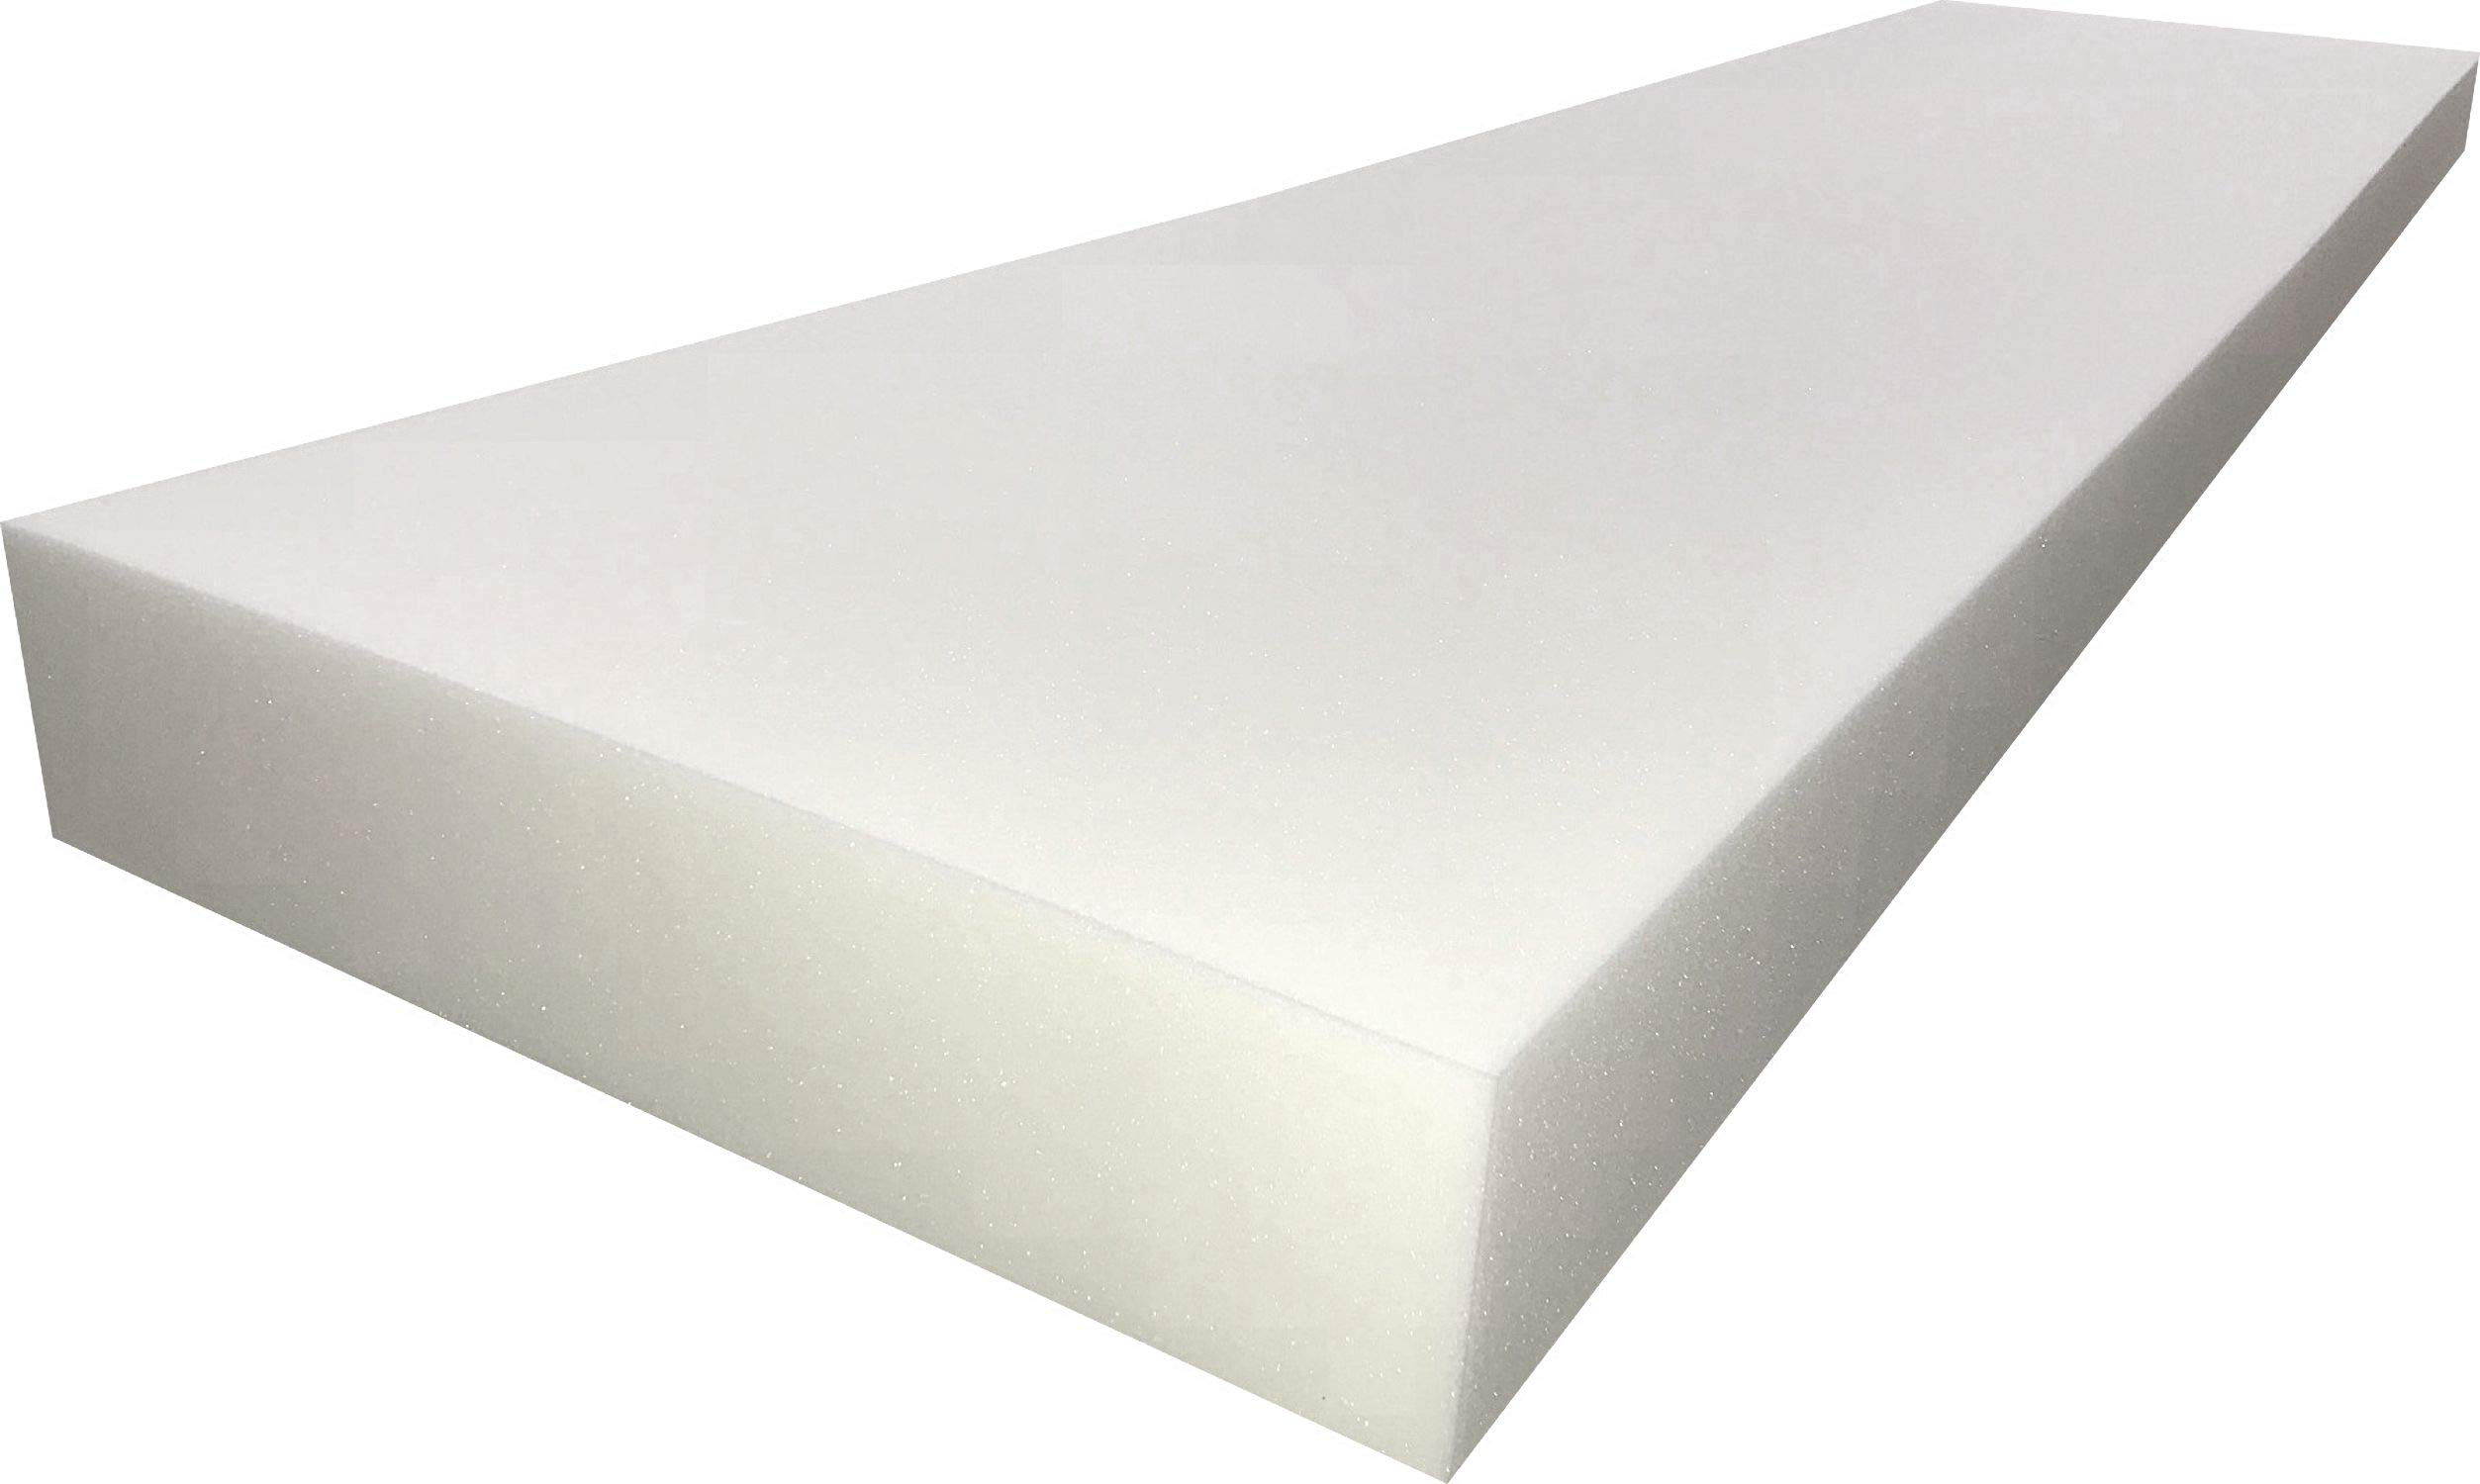 """FoamTouch Upholstery Cushion High Density Standard, Seat Replacement, Sheet, Padding, 3"""" L x 24"""" W x 72"""" H"""